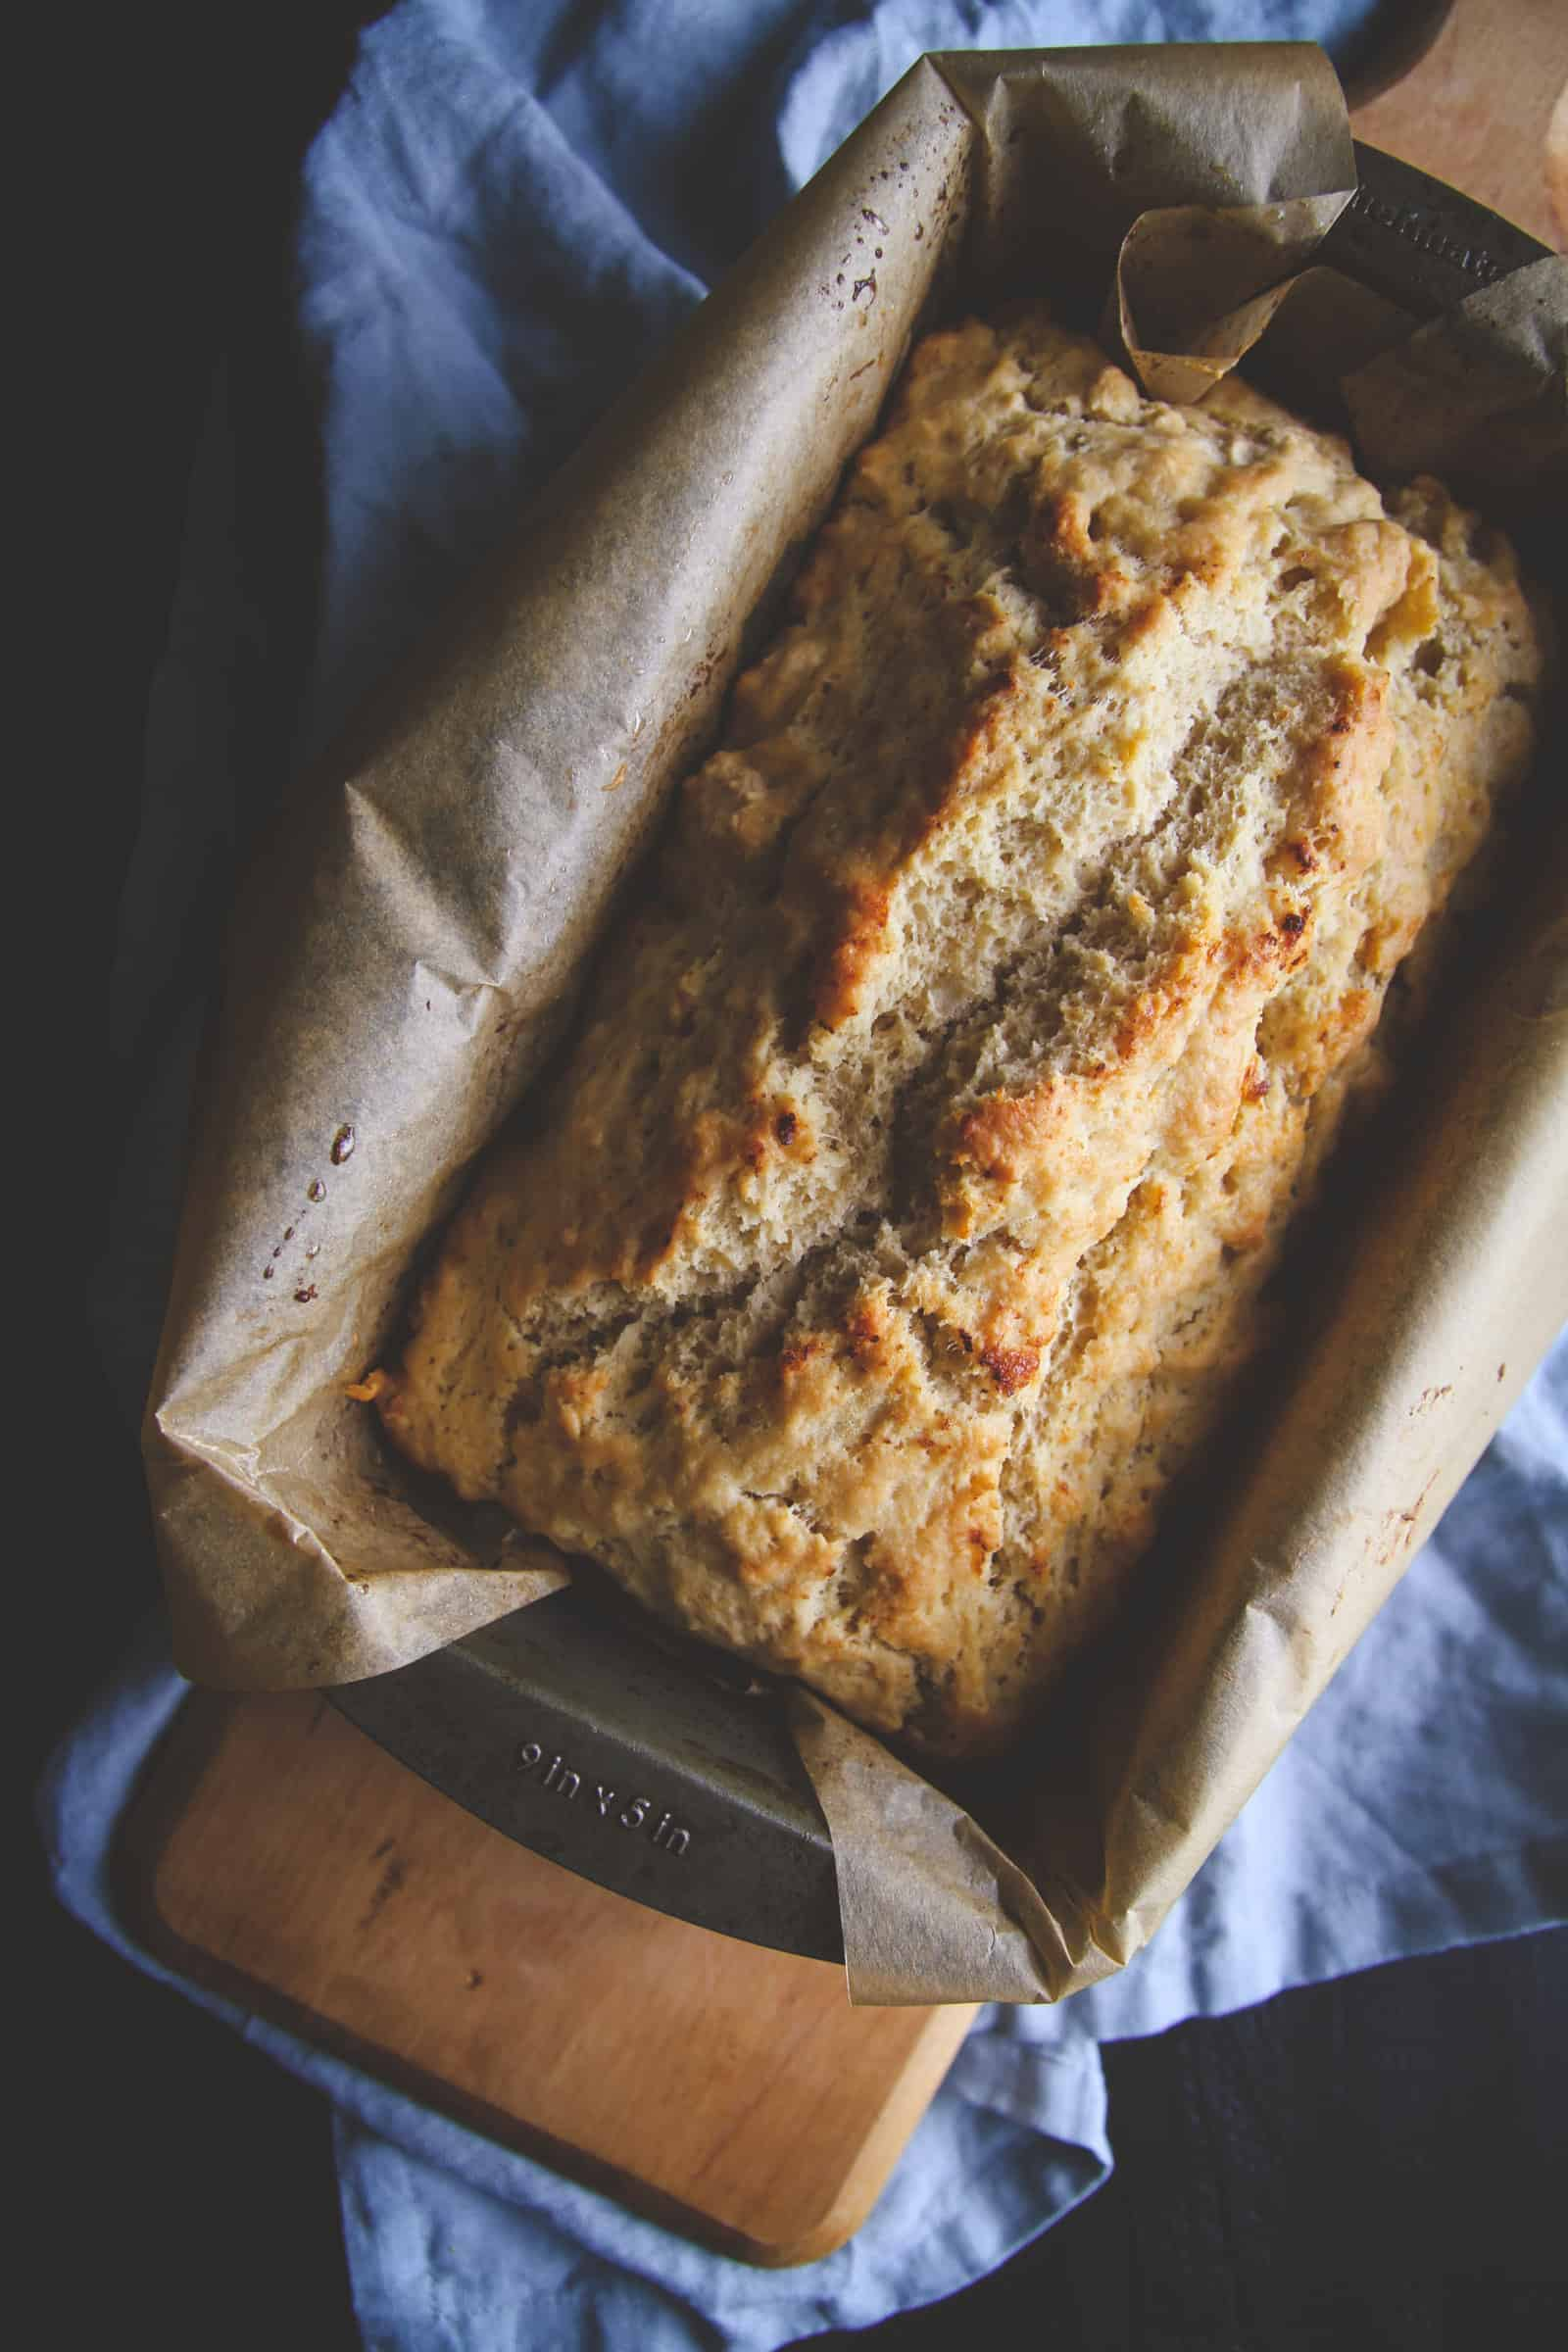 The perfect appetizer is this beer bread recipe